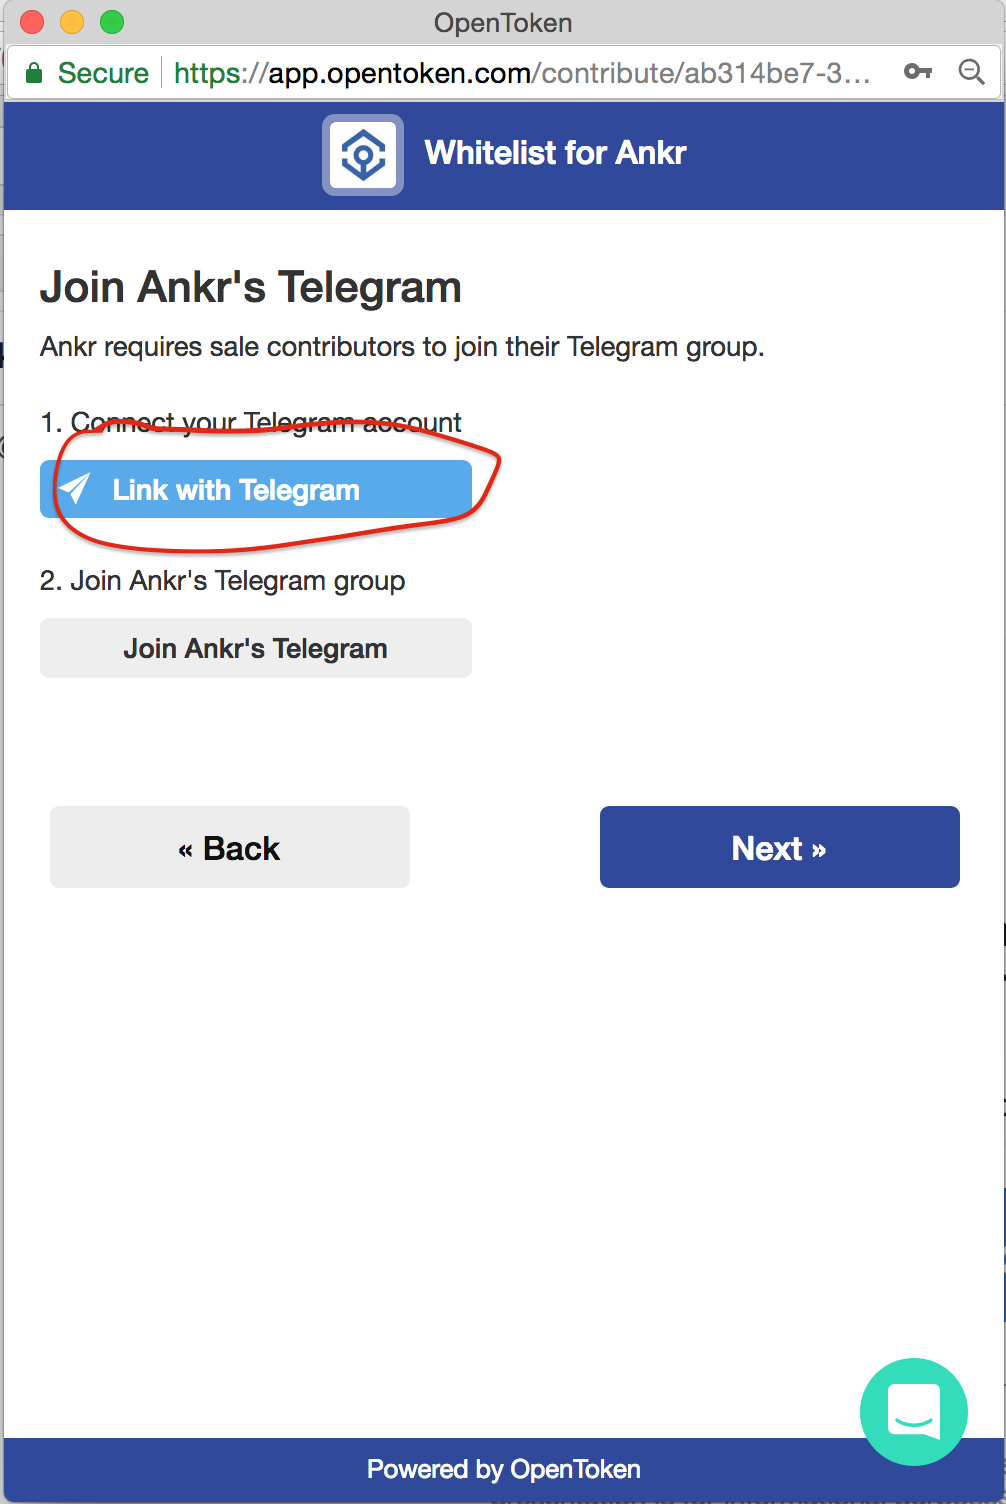 Ankr Whitelist — Linking Telegram - Daniel Chen - Medium